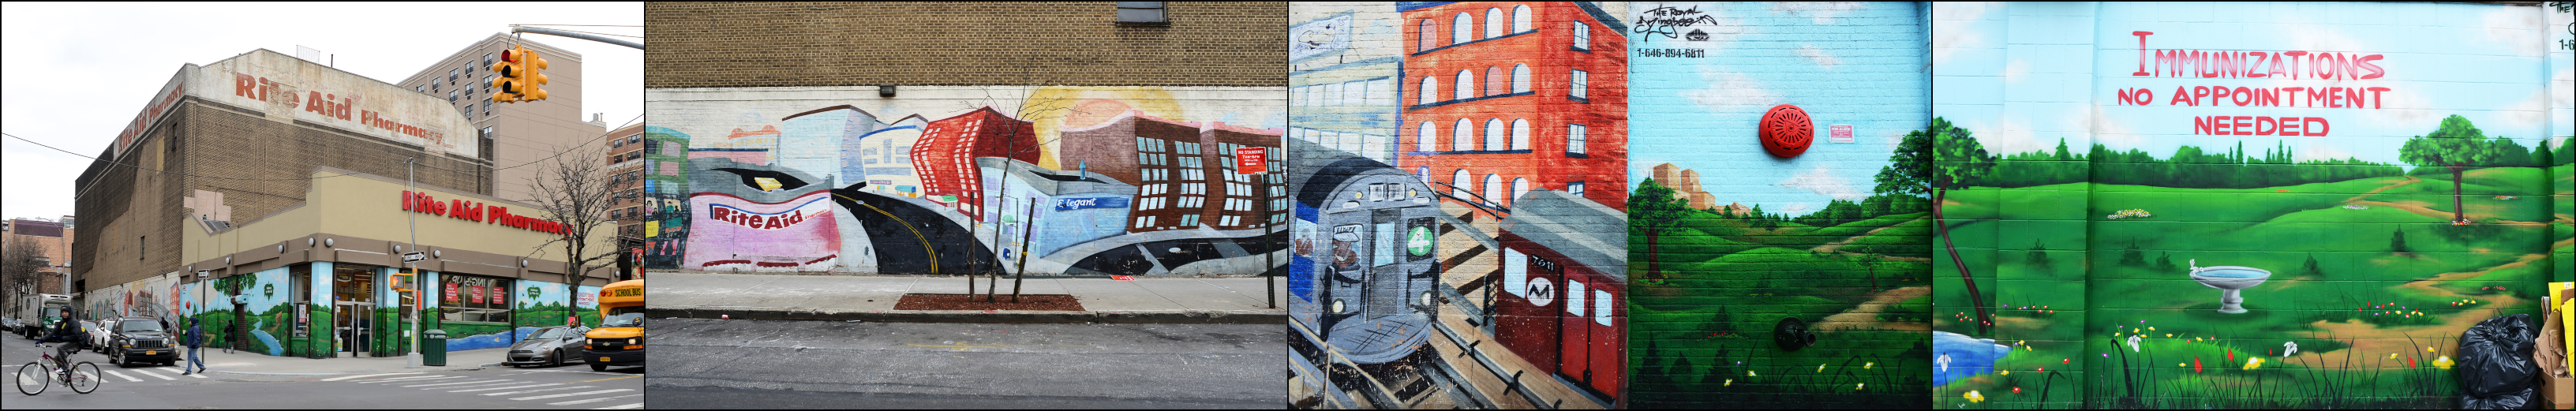 Some of the murals Royal KingBee created for Rite Aid in the Bronx.